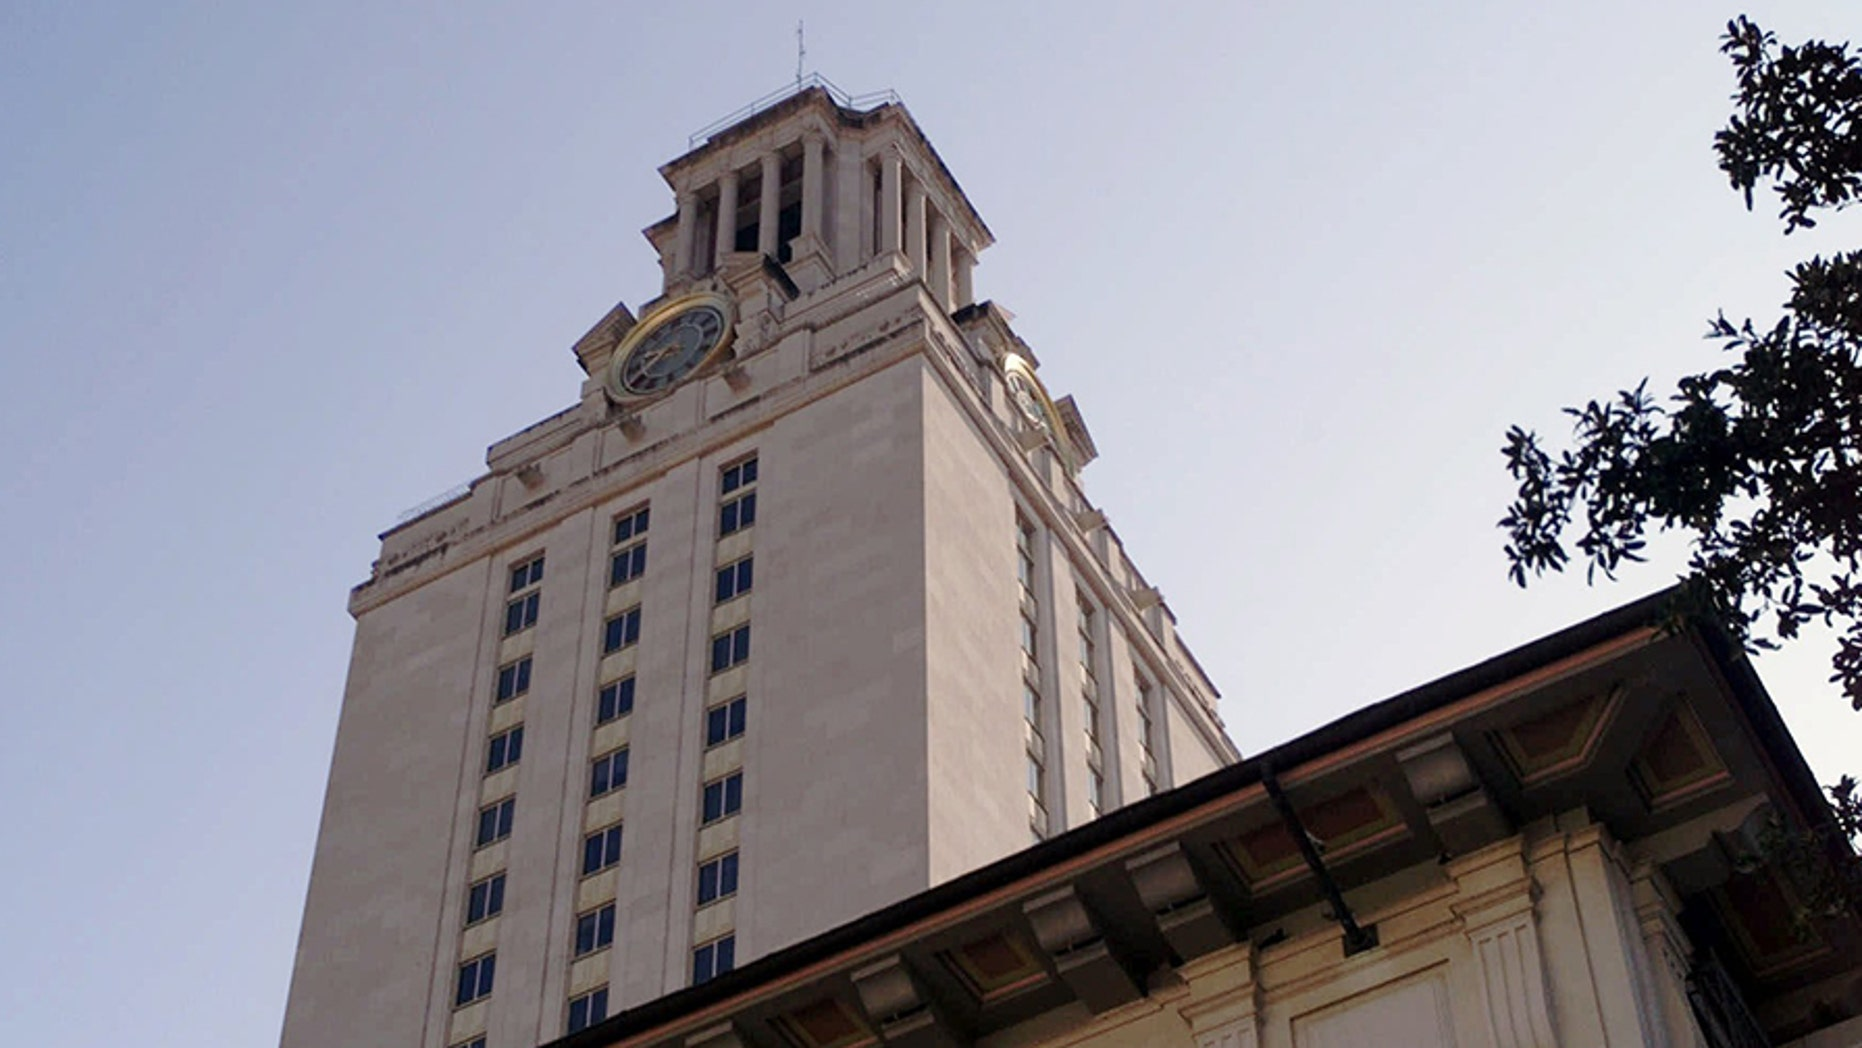 The Main Bell Tower at the University of Texas is shown Wednesday, Sept. 15, 1999, in Austin, Texas. Reopening of the observation deck, located just below the clock face, is a part of the university's 116th birthday celebration. The deck was closed to the public in 1974 after several suicides.  It was the position taken by a sniper in 1966 who killed 14 and wounded 31 people. The protective stainless steel lattice curtain that arches above the deck is a recent addition.  (AP Photo/Harry Cabluck)